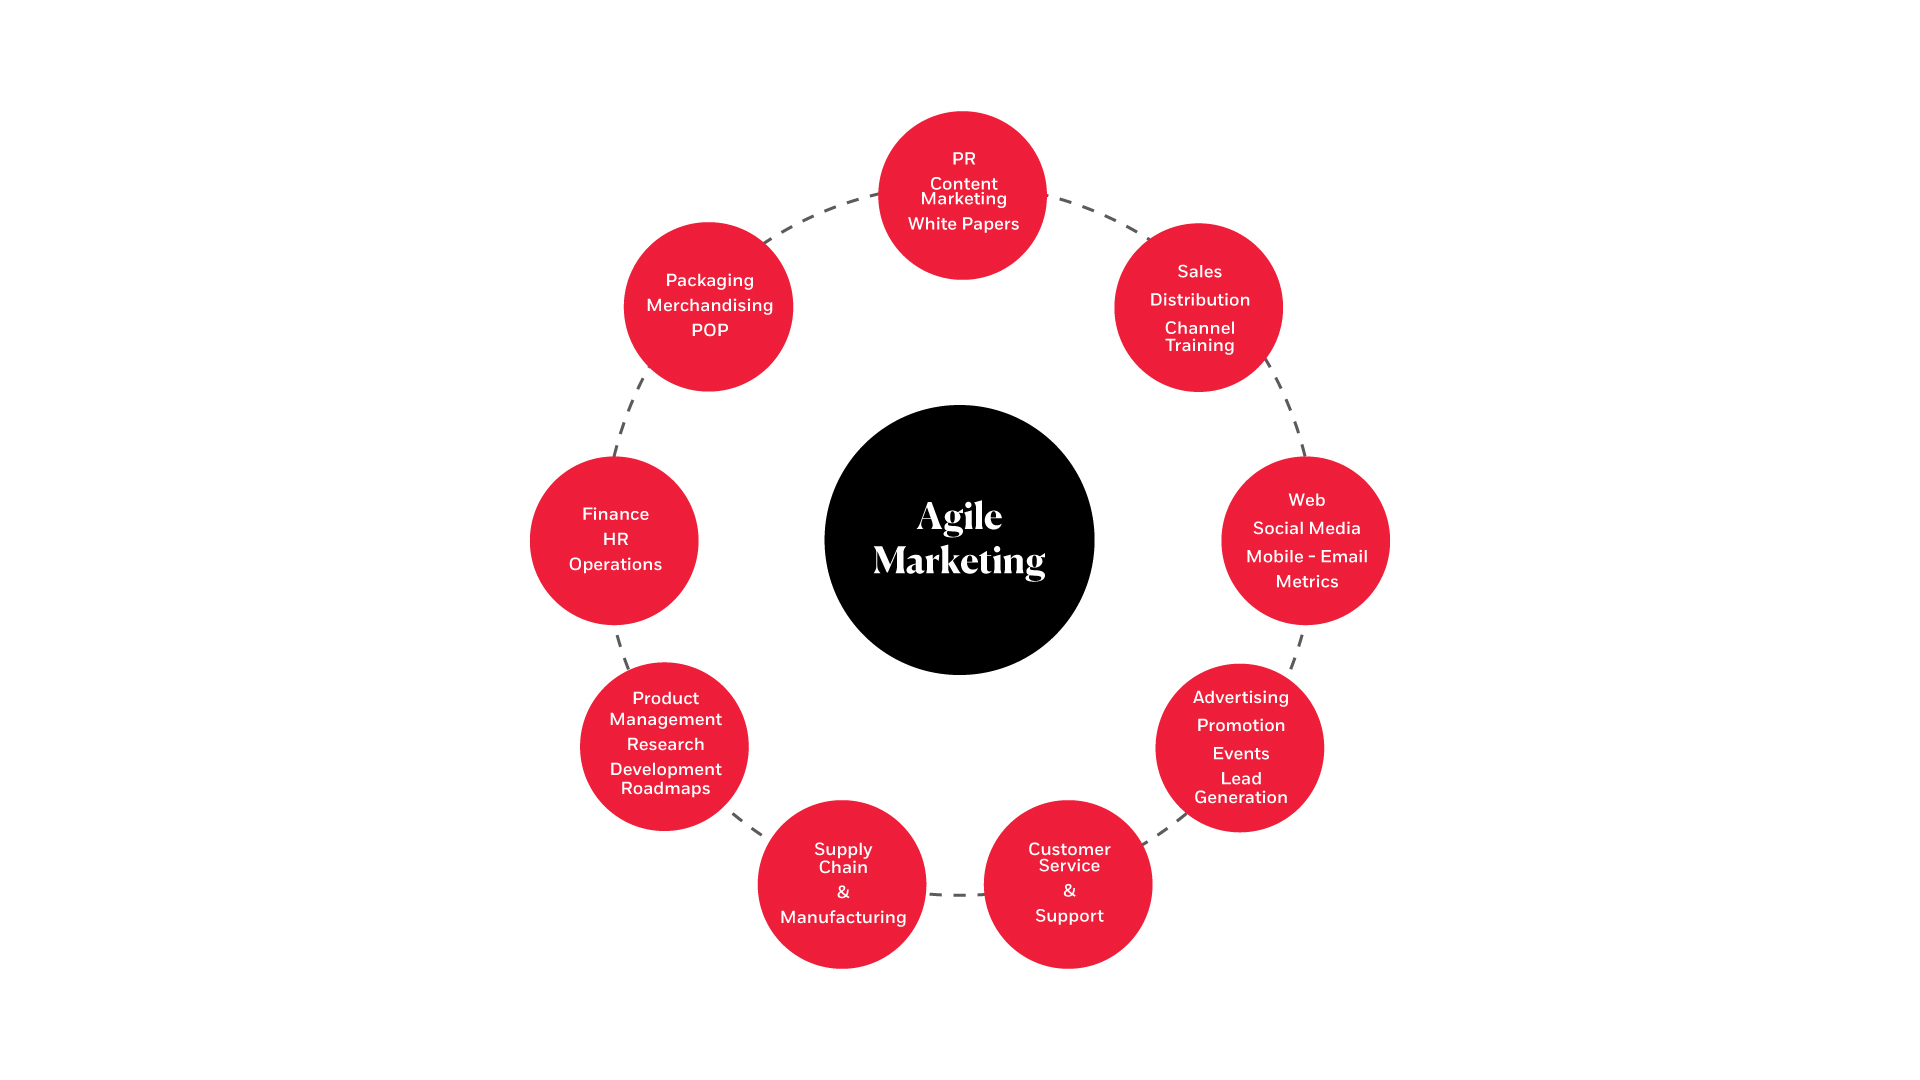 esquema agile marketing de gestión de proyectos